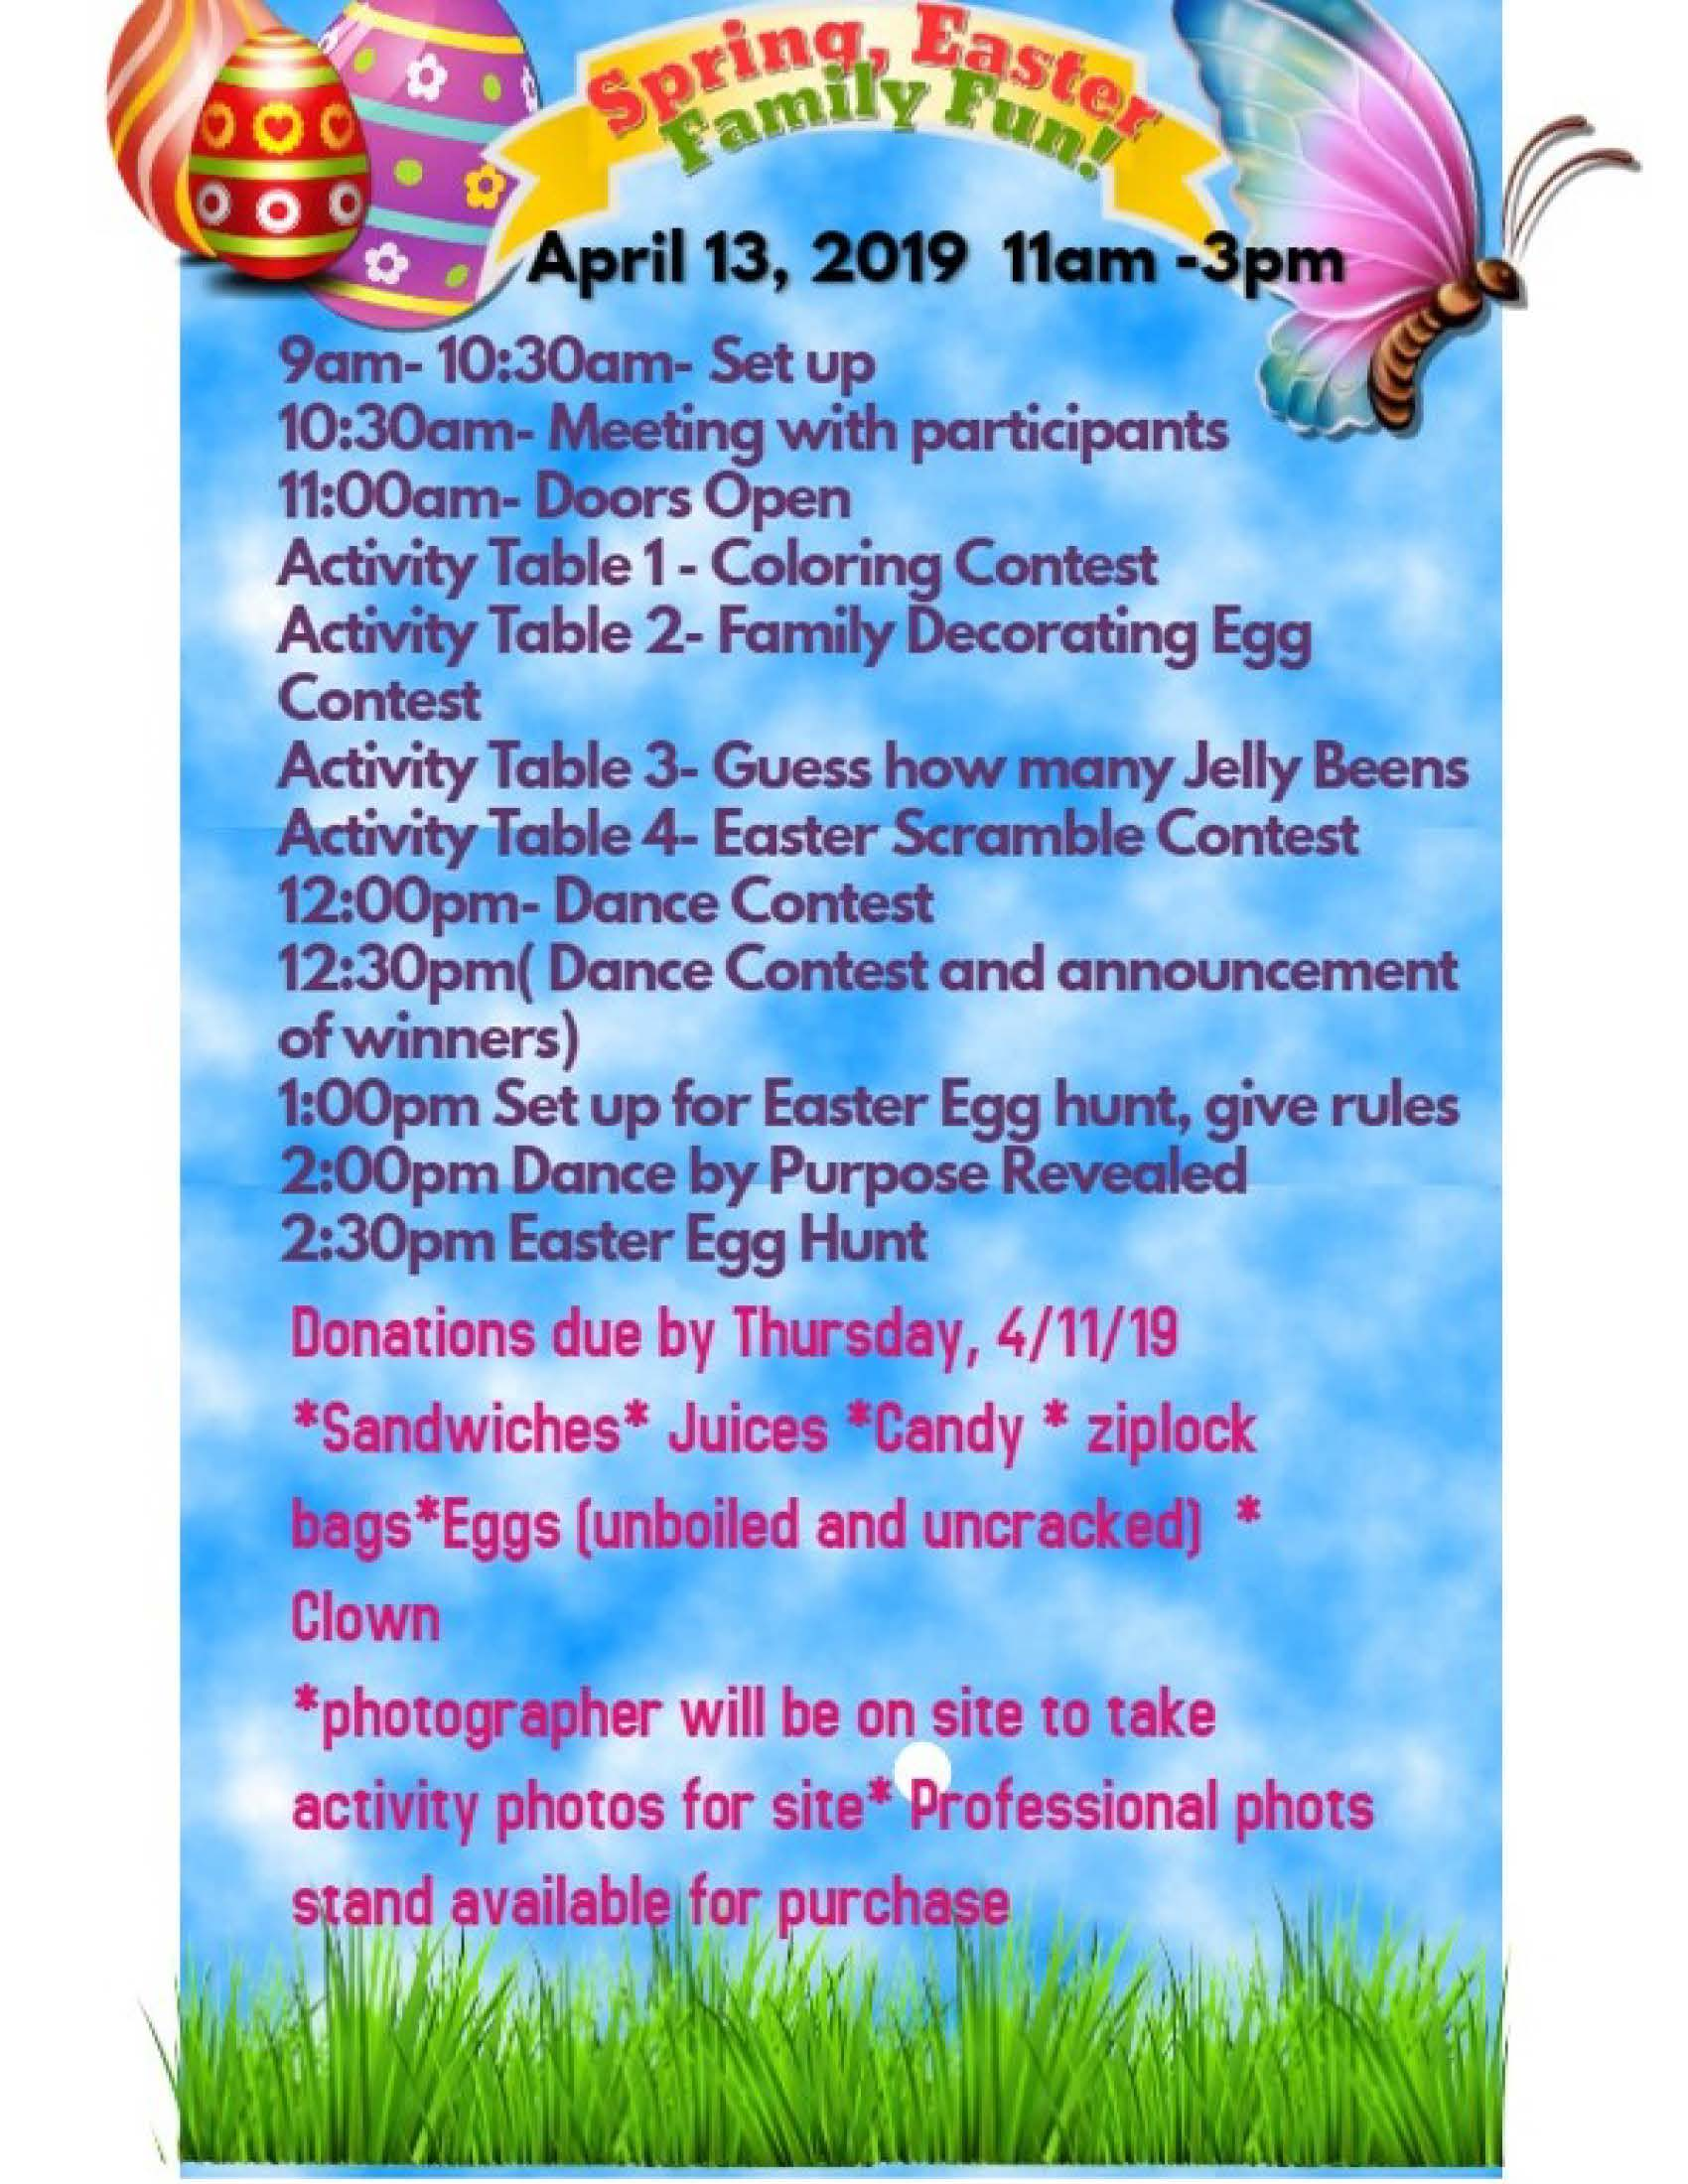 Family Fun Easter Activities Schedule at the John D. Rita Rec Center.